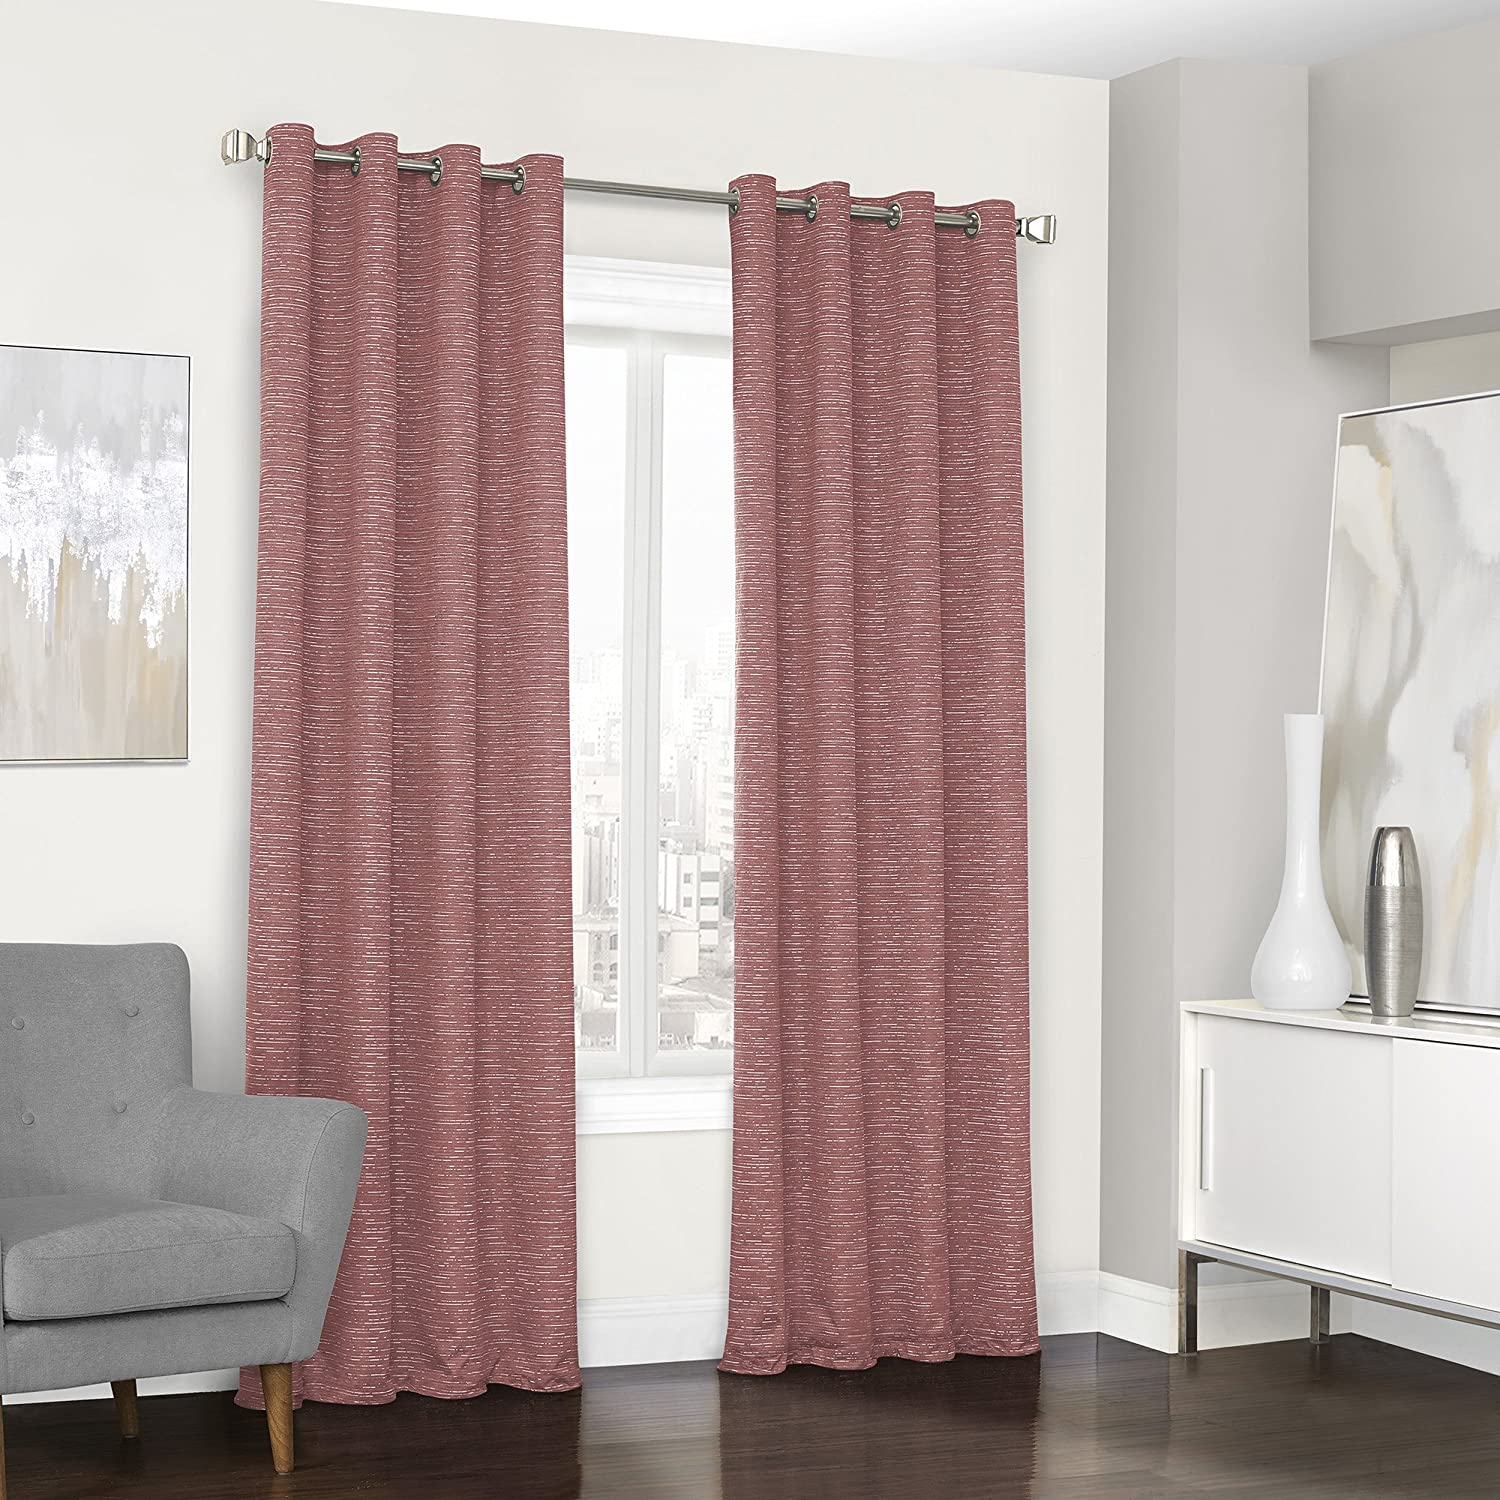 Eclipse 16401052084TEL Randall Blackout Grommet Window Curtain 52x84 Teal